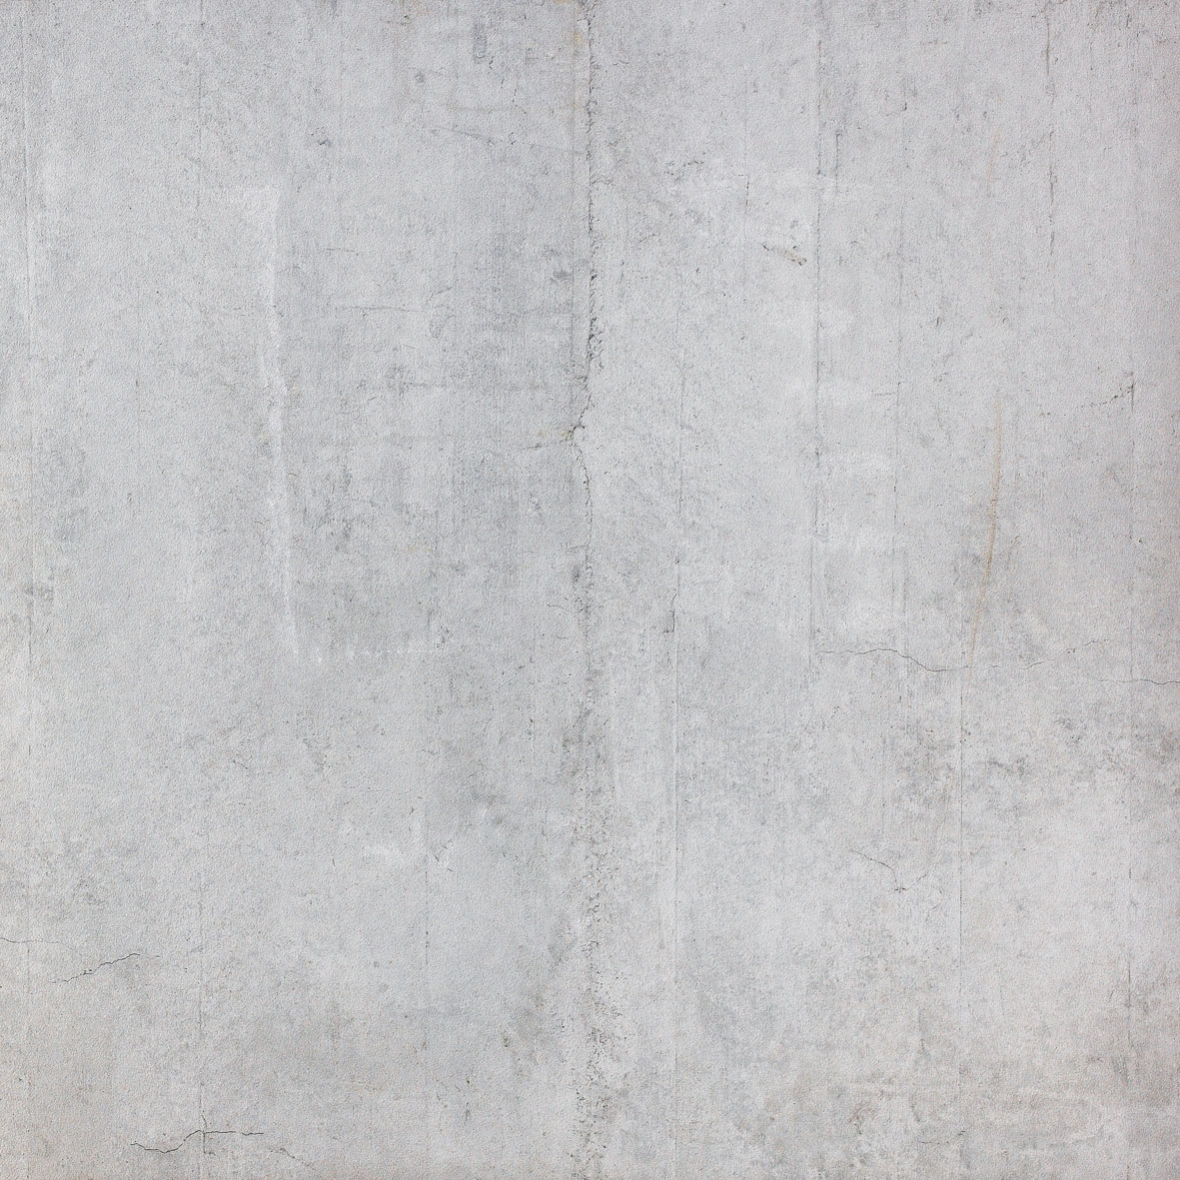 P0073 Cament Desert Porcelain Tile, Cloud